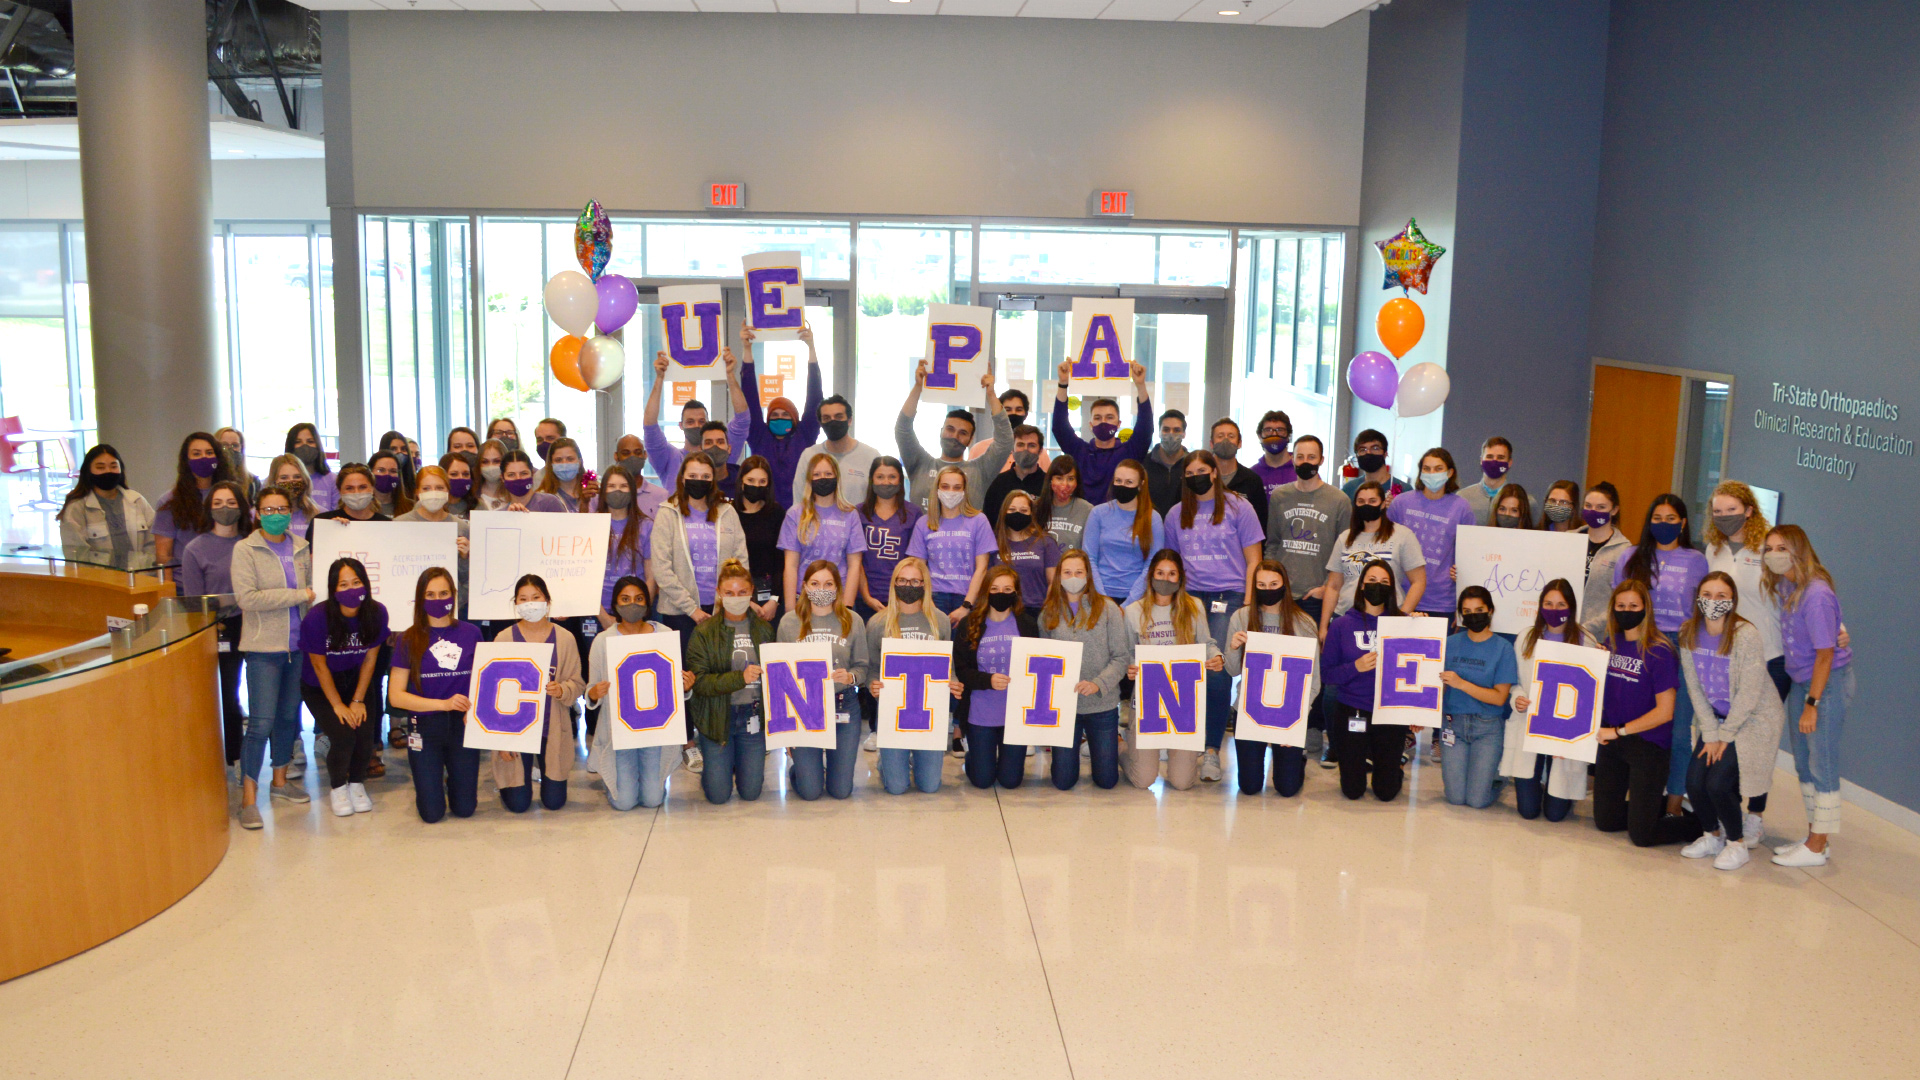 UE PA students holding up 'UE PA Continued' signs.